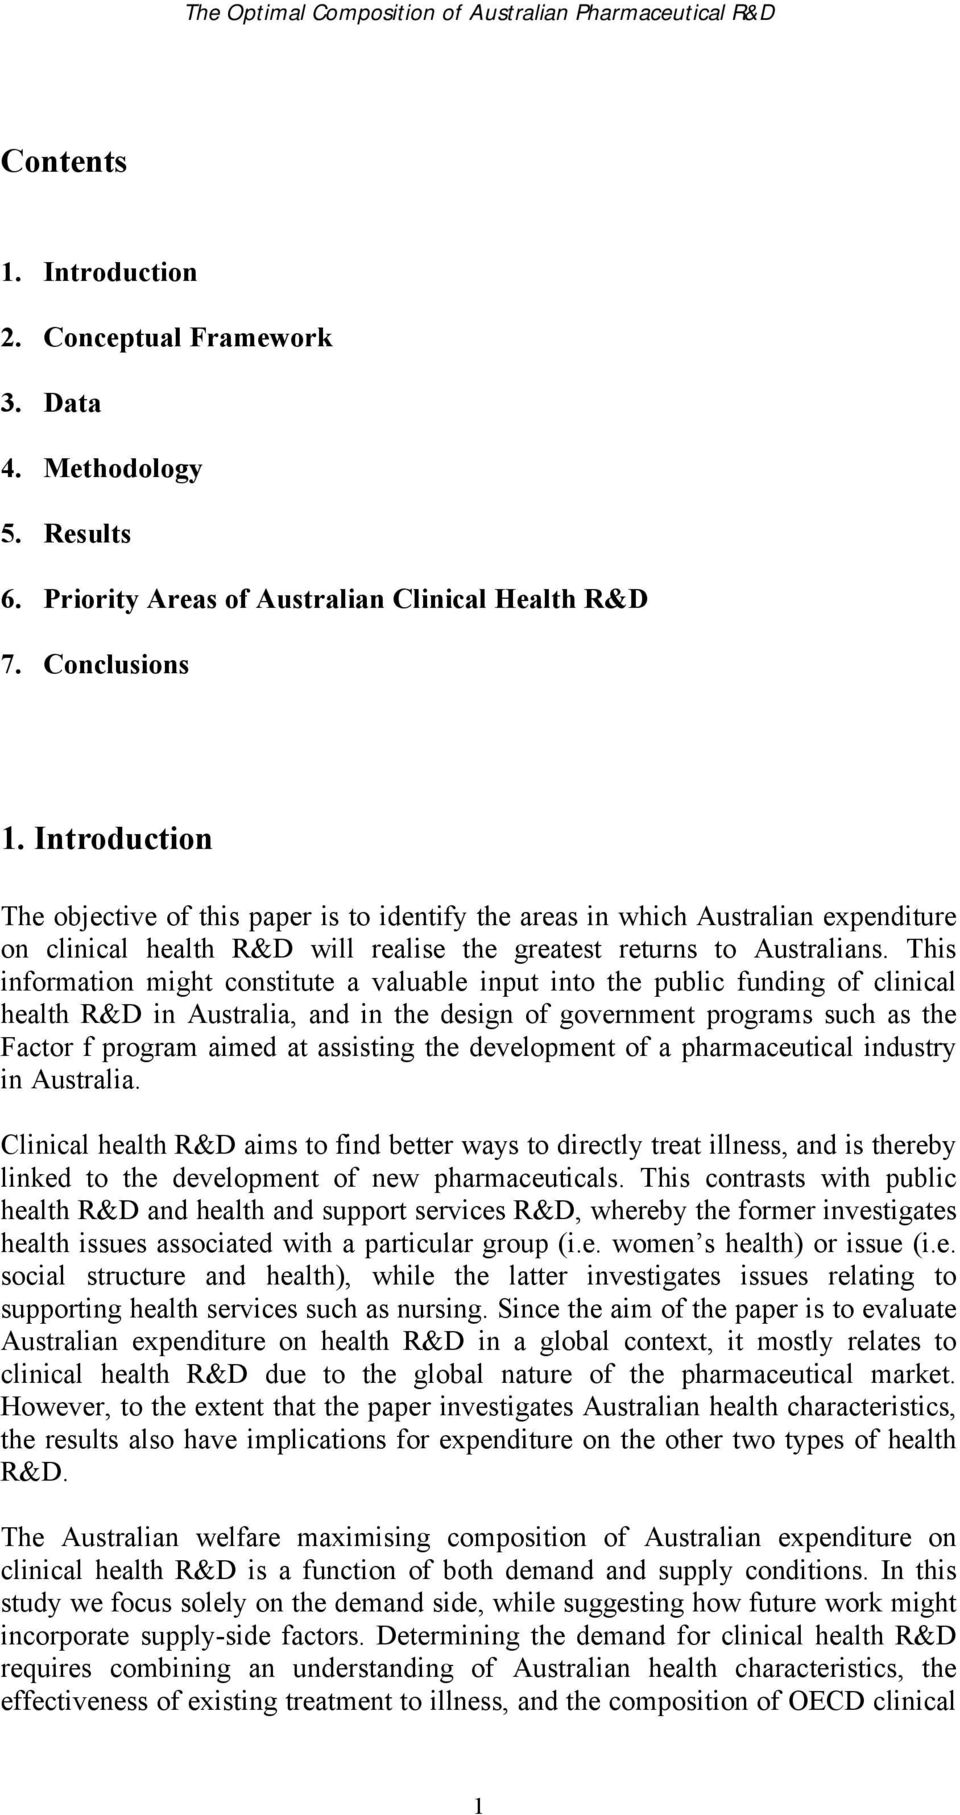 This information might constitute a valuable input into the public funding of clinical health R&D in Australia, and in the design of government programs such as the Factor f program aimed at